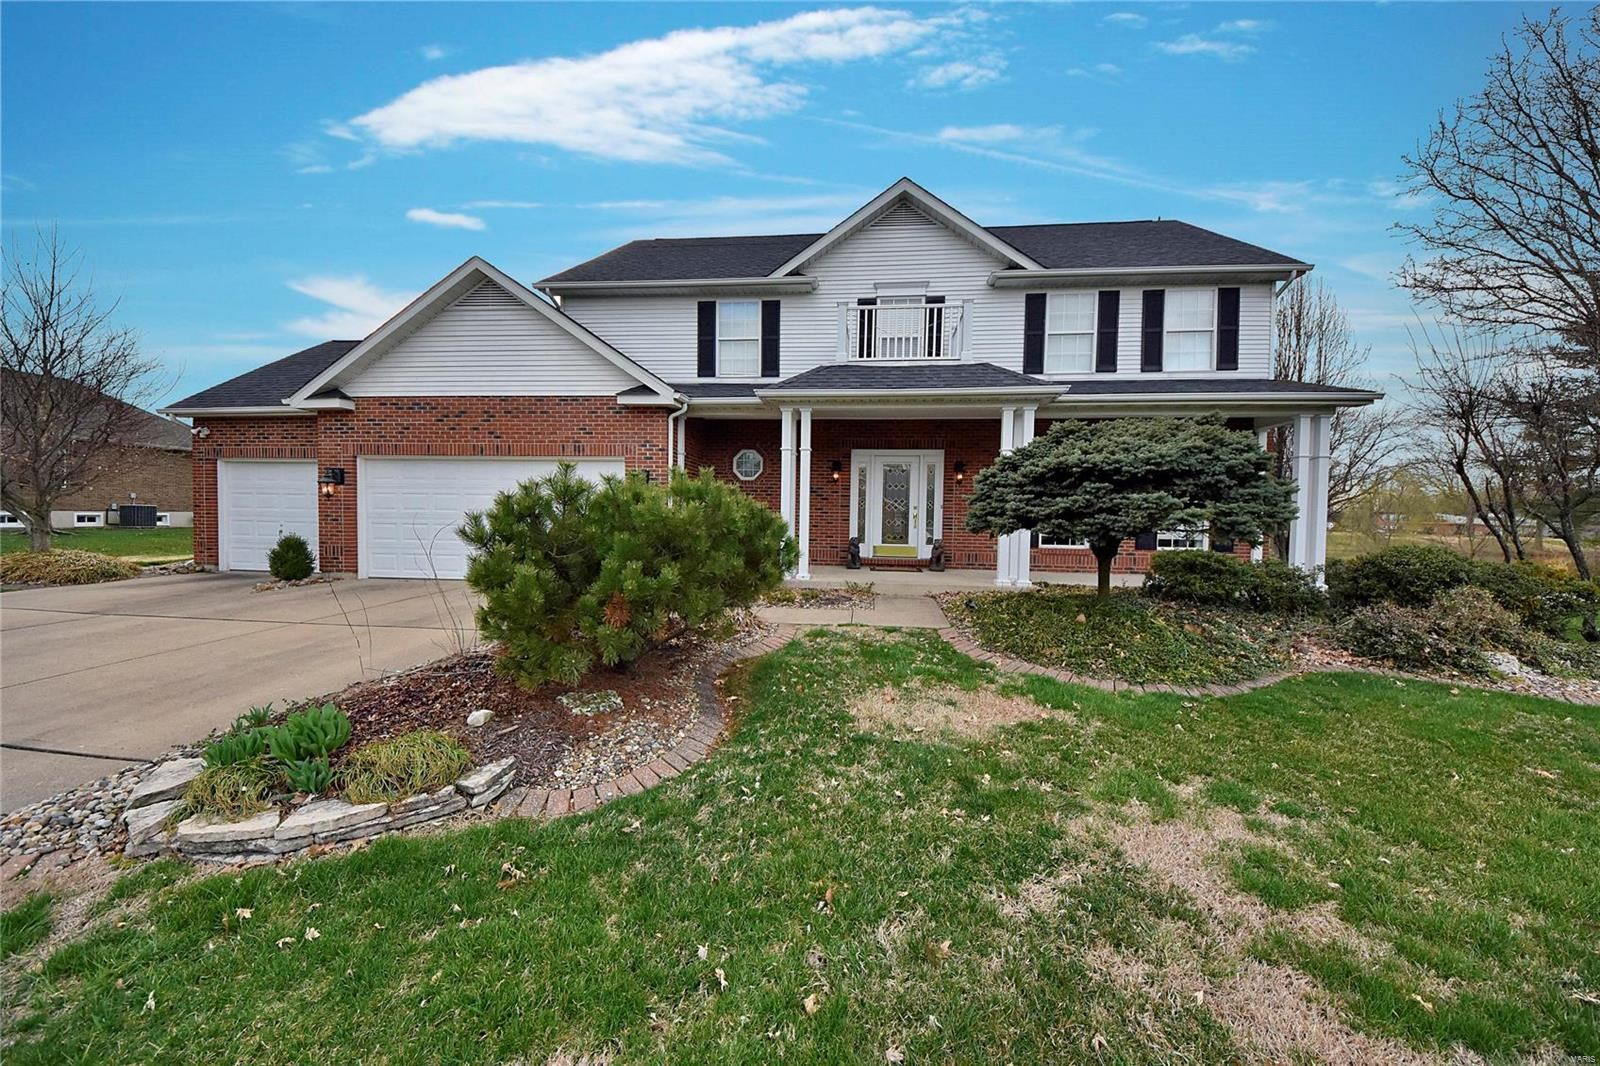 101 South Lindenwood, Collinsville, IL 62234 - MLS#: 20017018